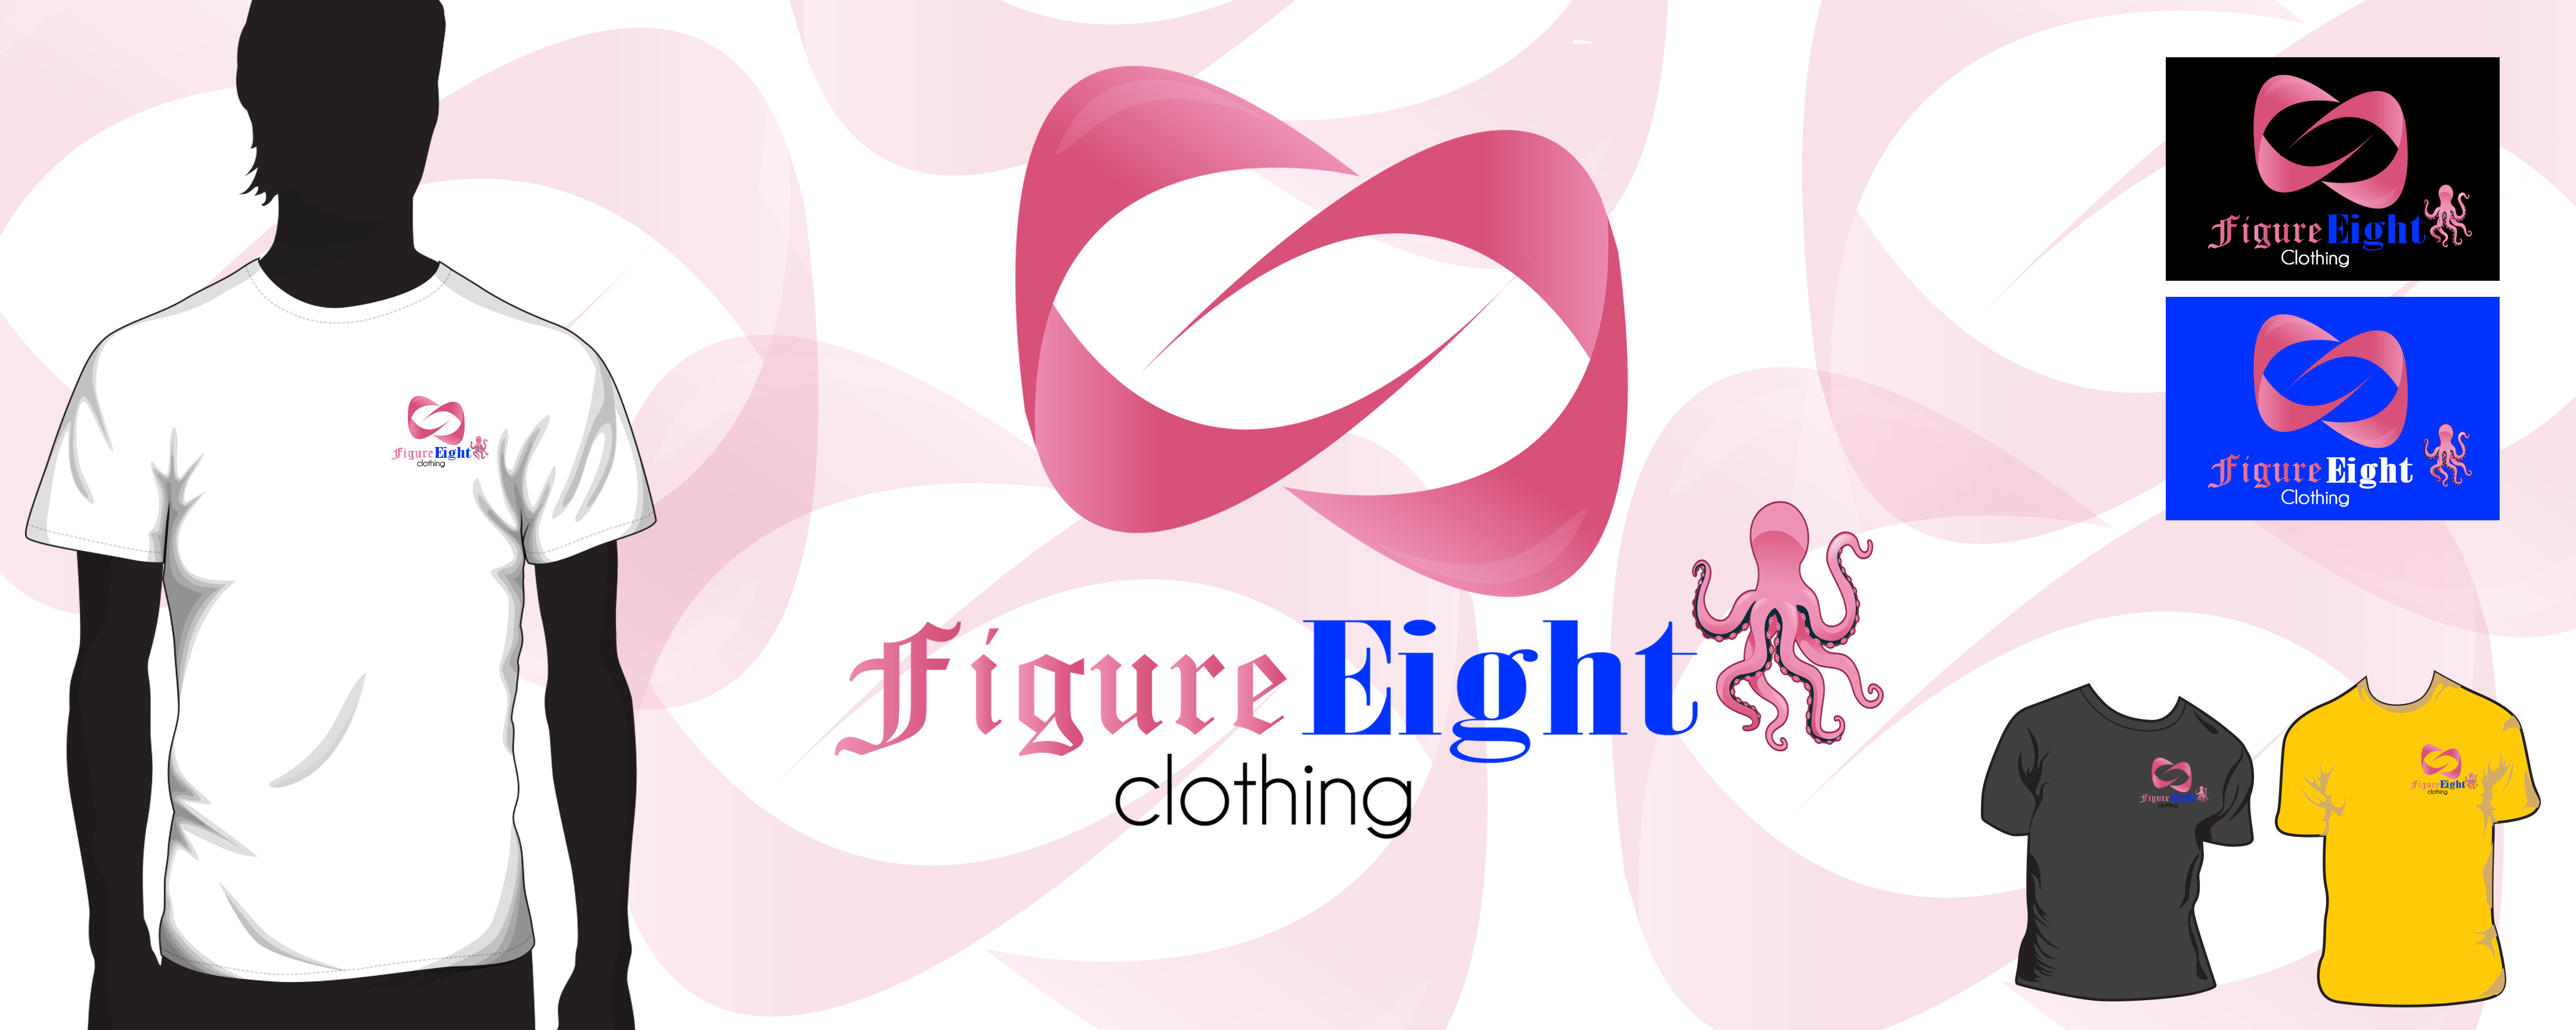 Logo Design by Leonard Anthony Alloso - Entry No. 128 in the Logo Design Contest Artistic Logo Design for Figure Eight Clothing.